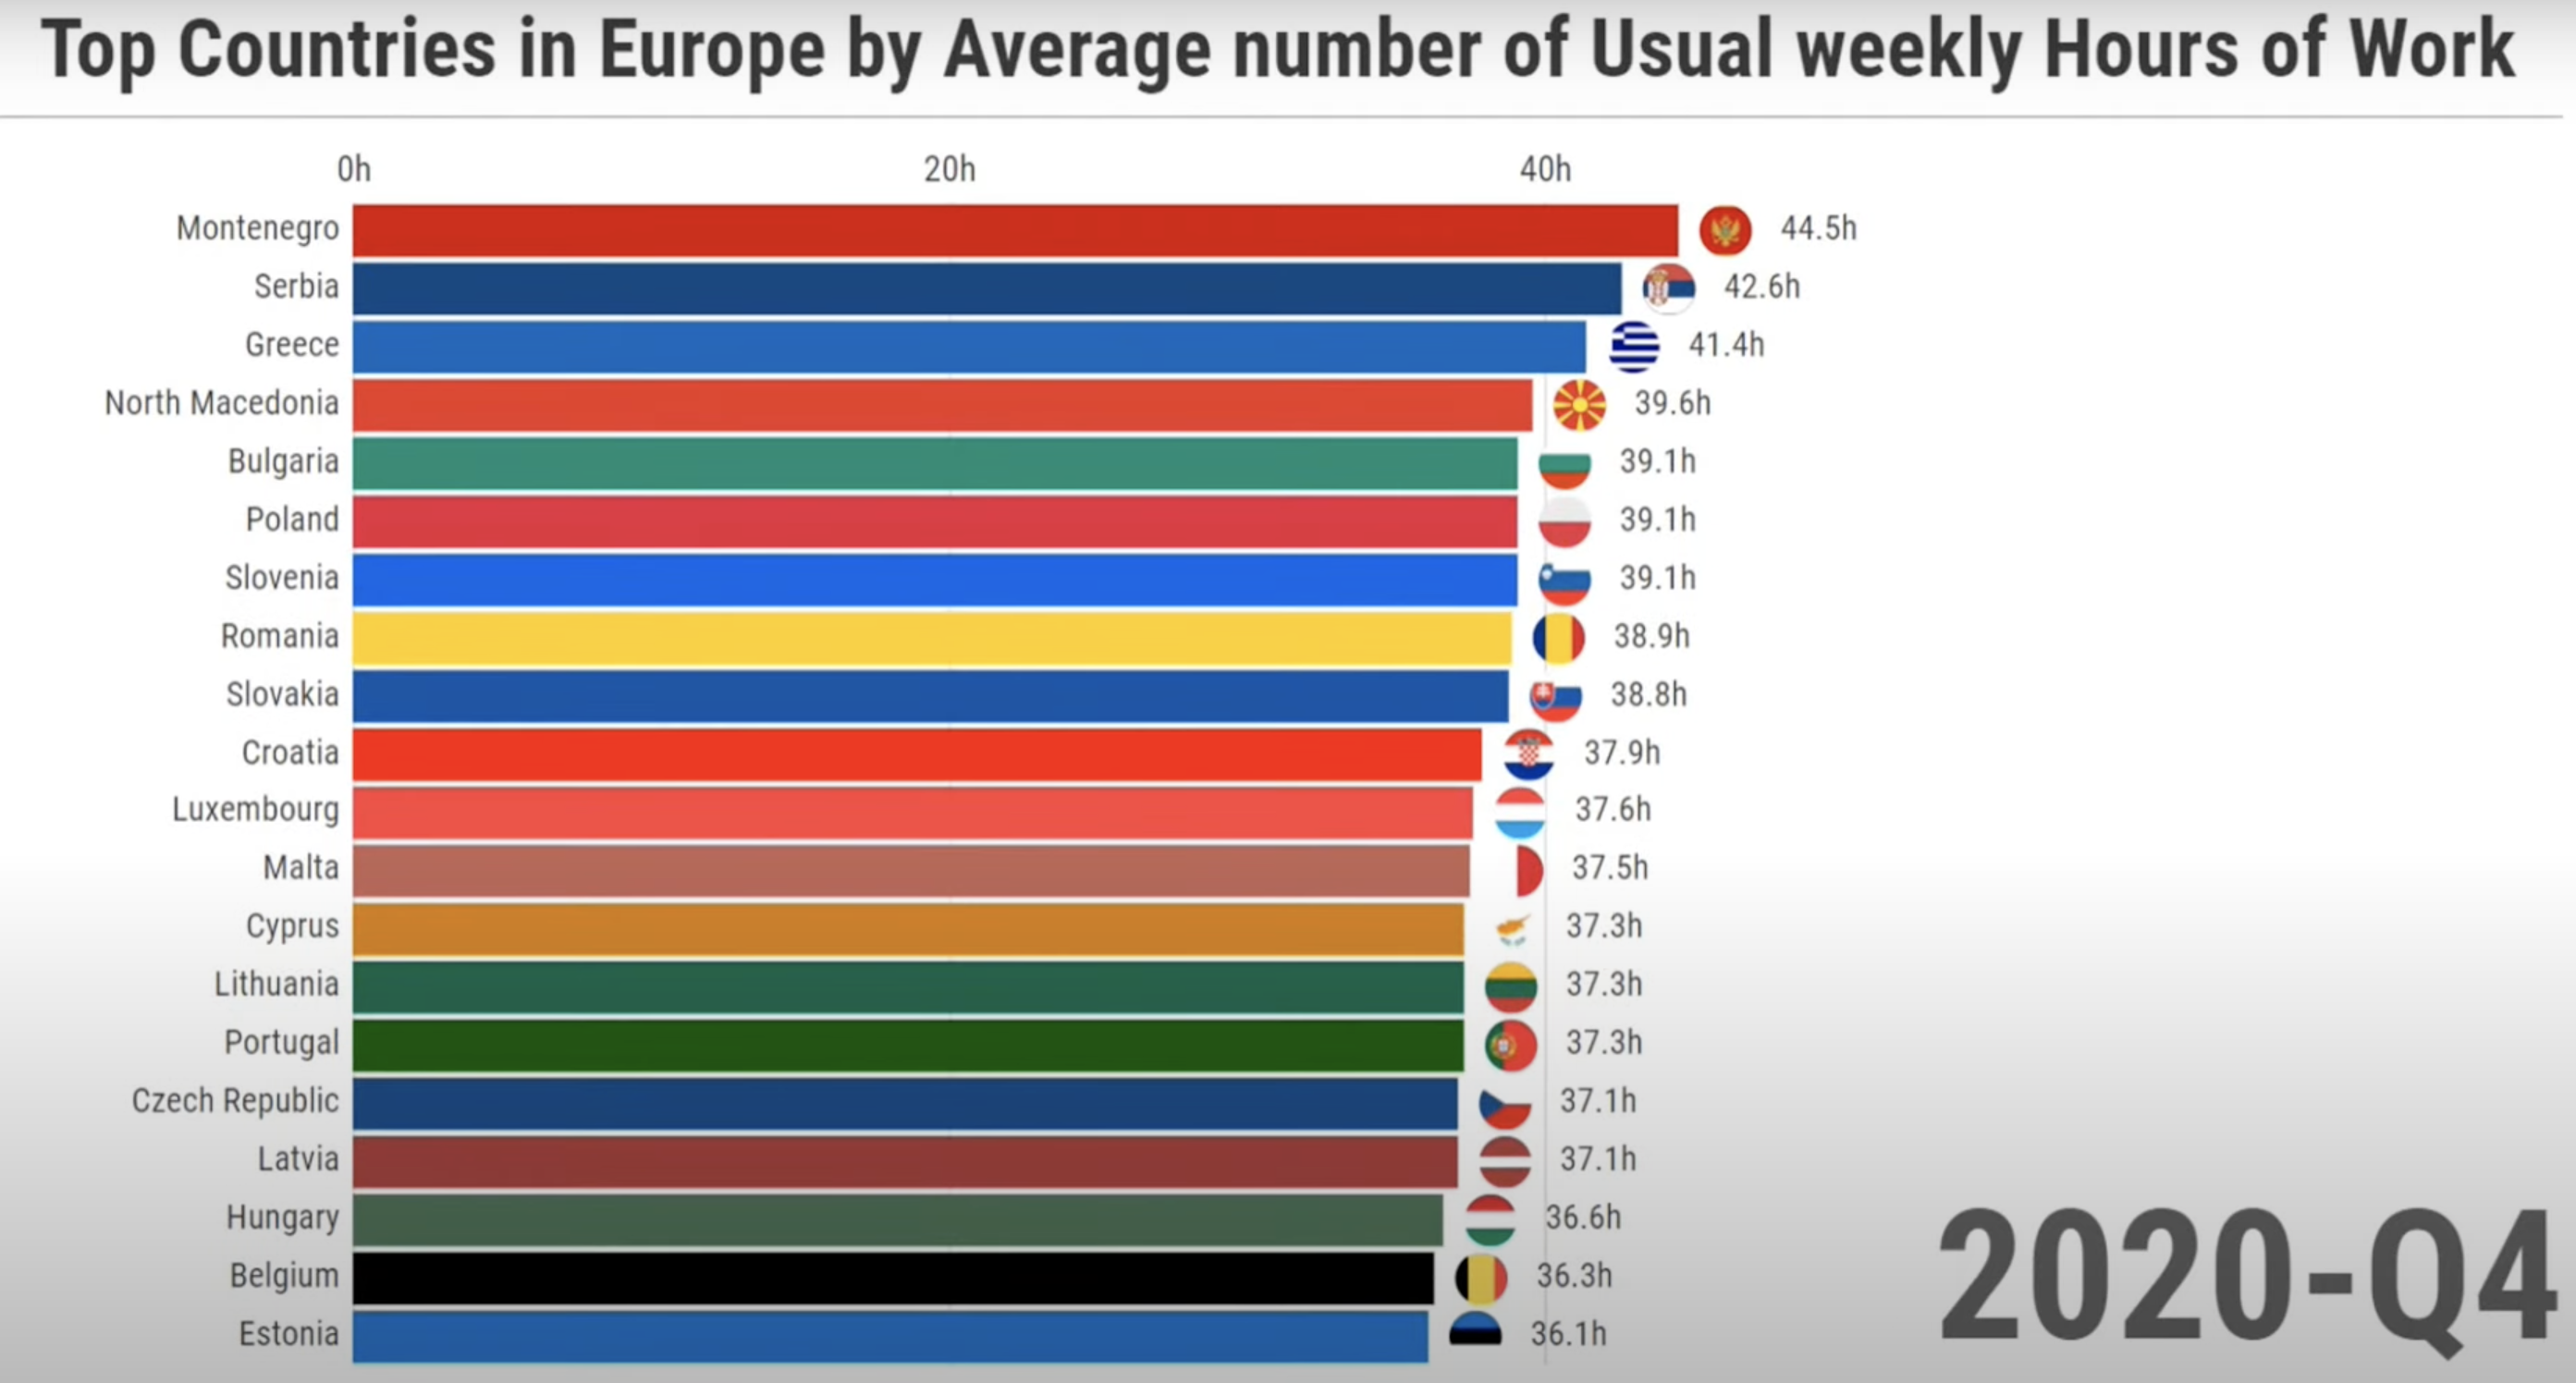 Montenegro, Serbia and Greece the first countries in Europe in working hours per week